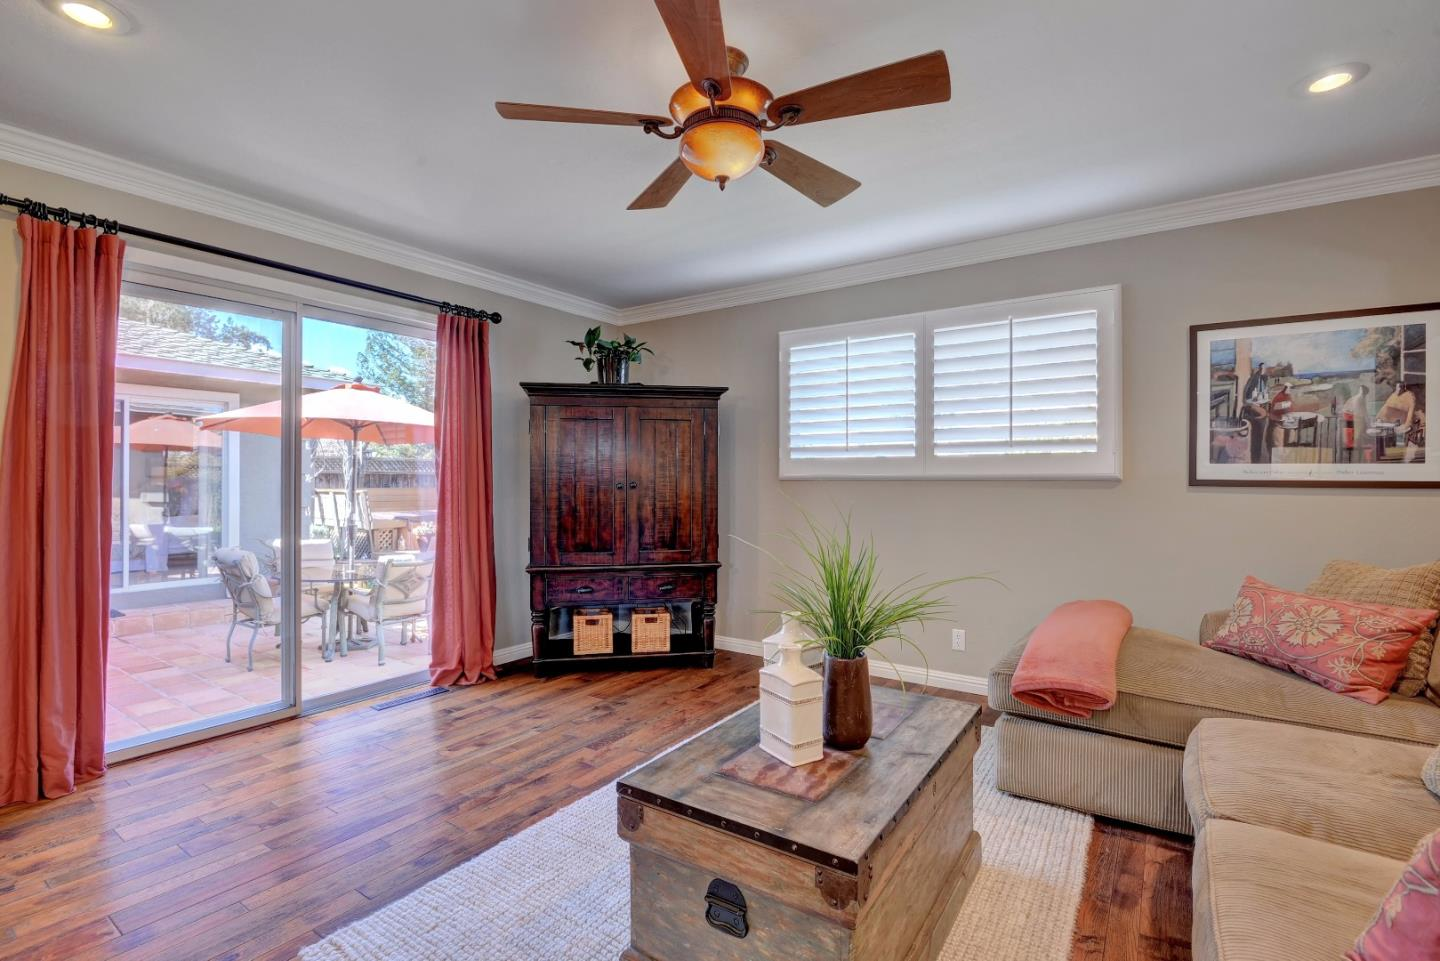 Additional photo for property listing at 1571 Hyde Dr  LOS GATOS, CALIFORNIA 95032